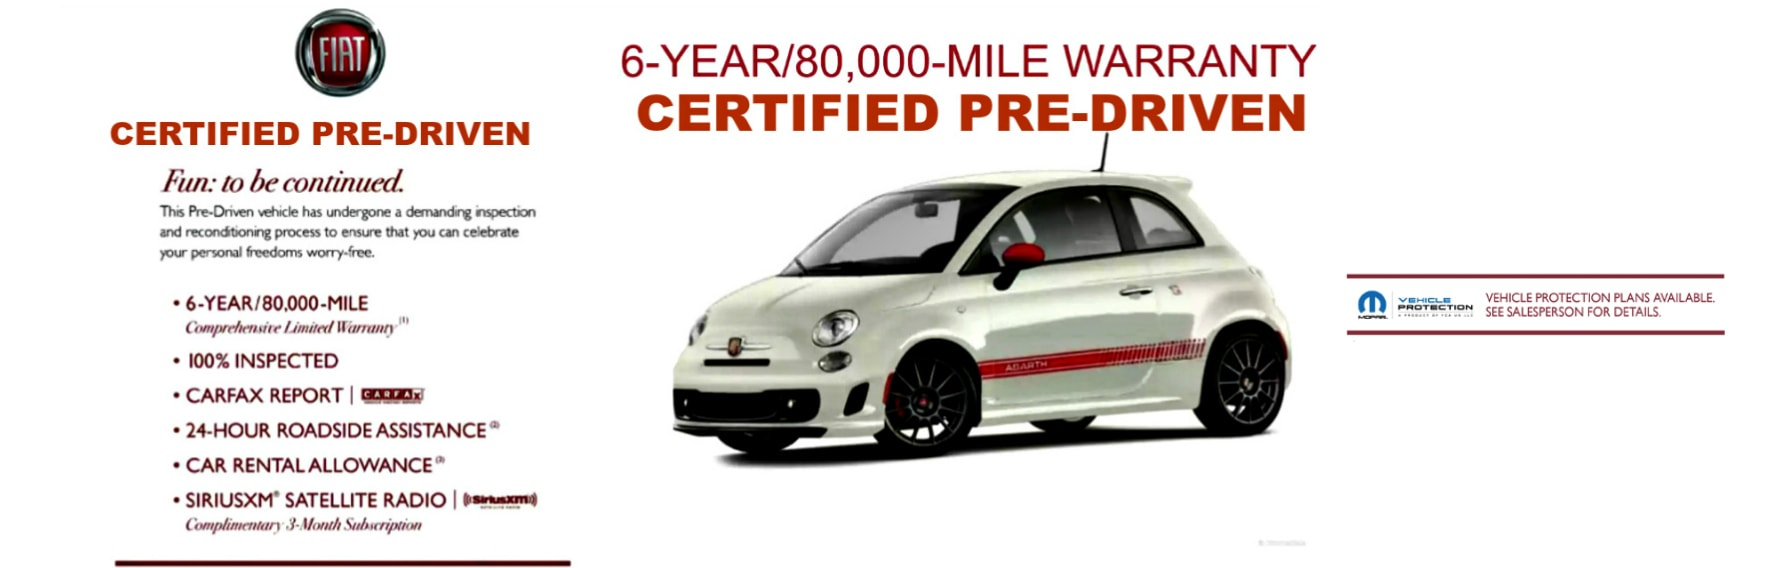 Alfa Romeo FIAT Of Maple Shade New Jersey NJ Alfa Romeo Fiat - Fiat lease nj